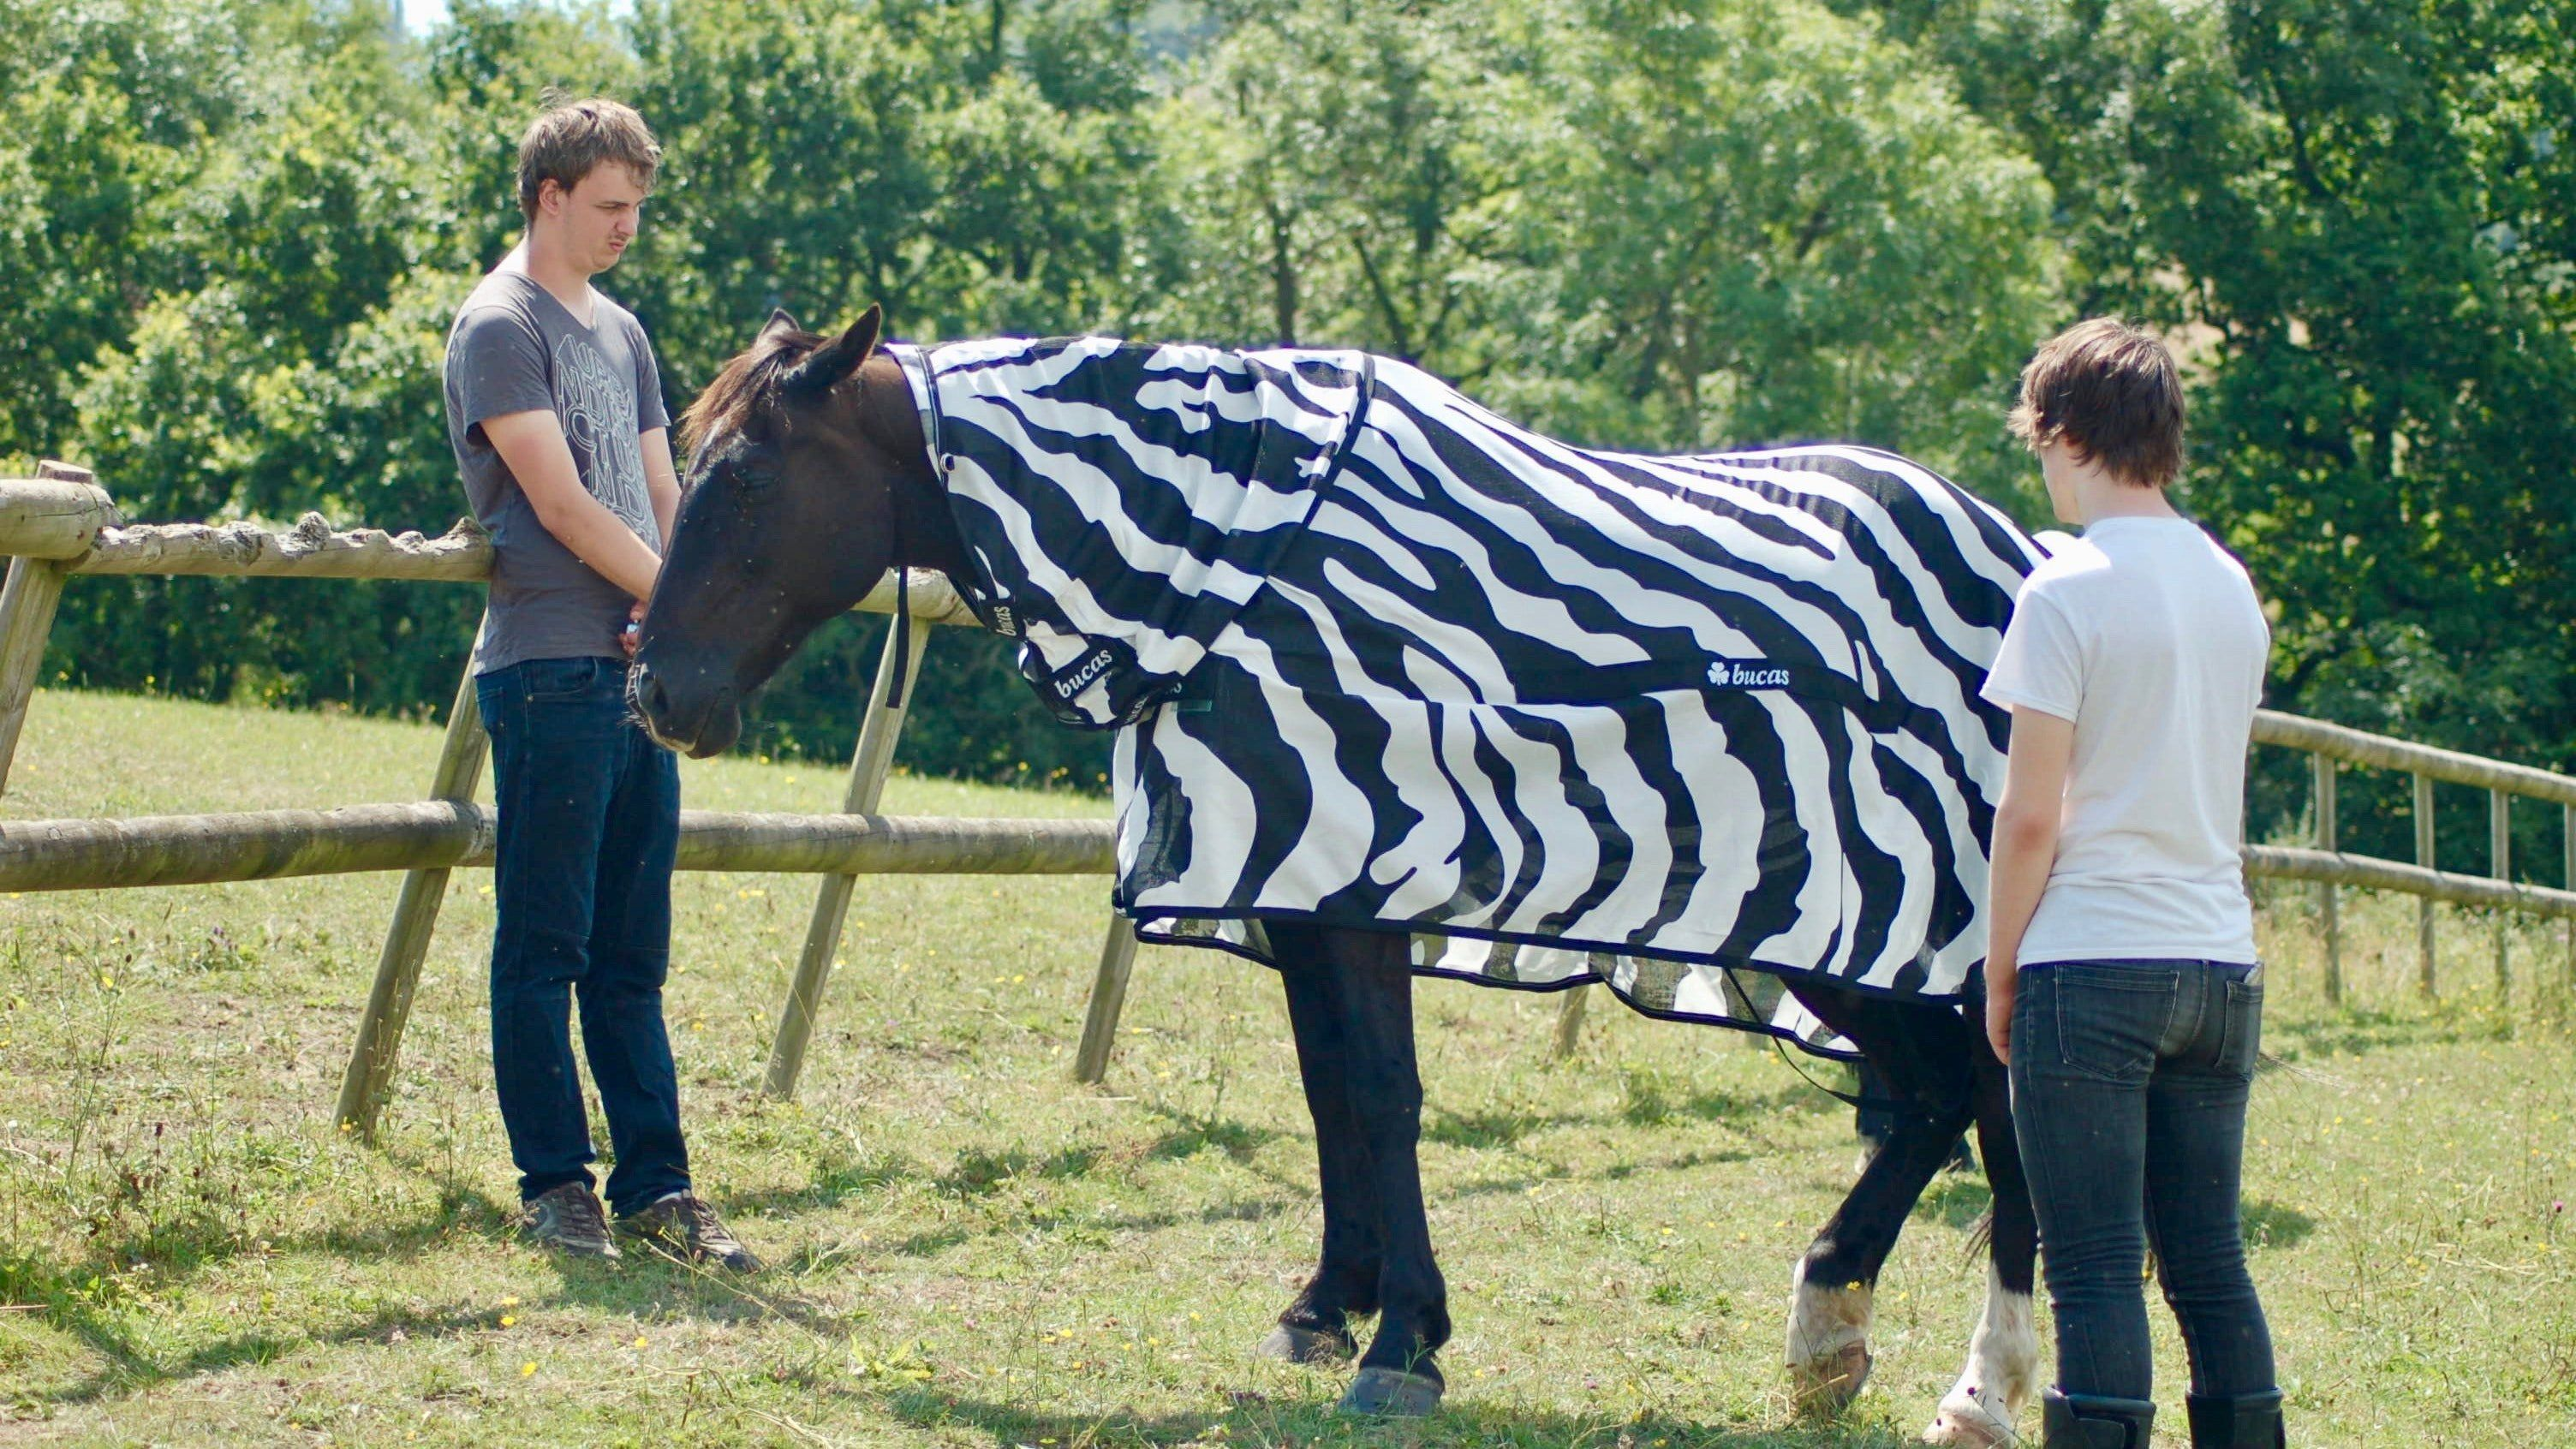 SAY WHAT?: People Are Dressing Horses As Zebras To Solve An Age-Old Scientific